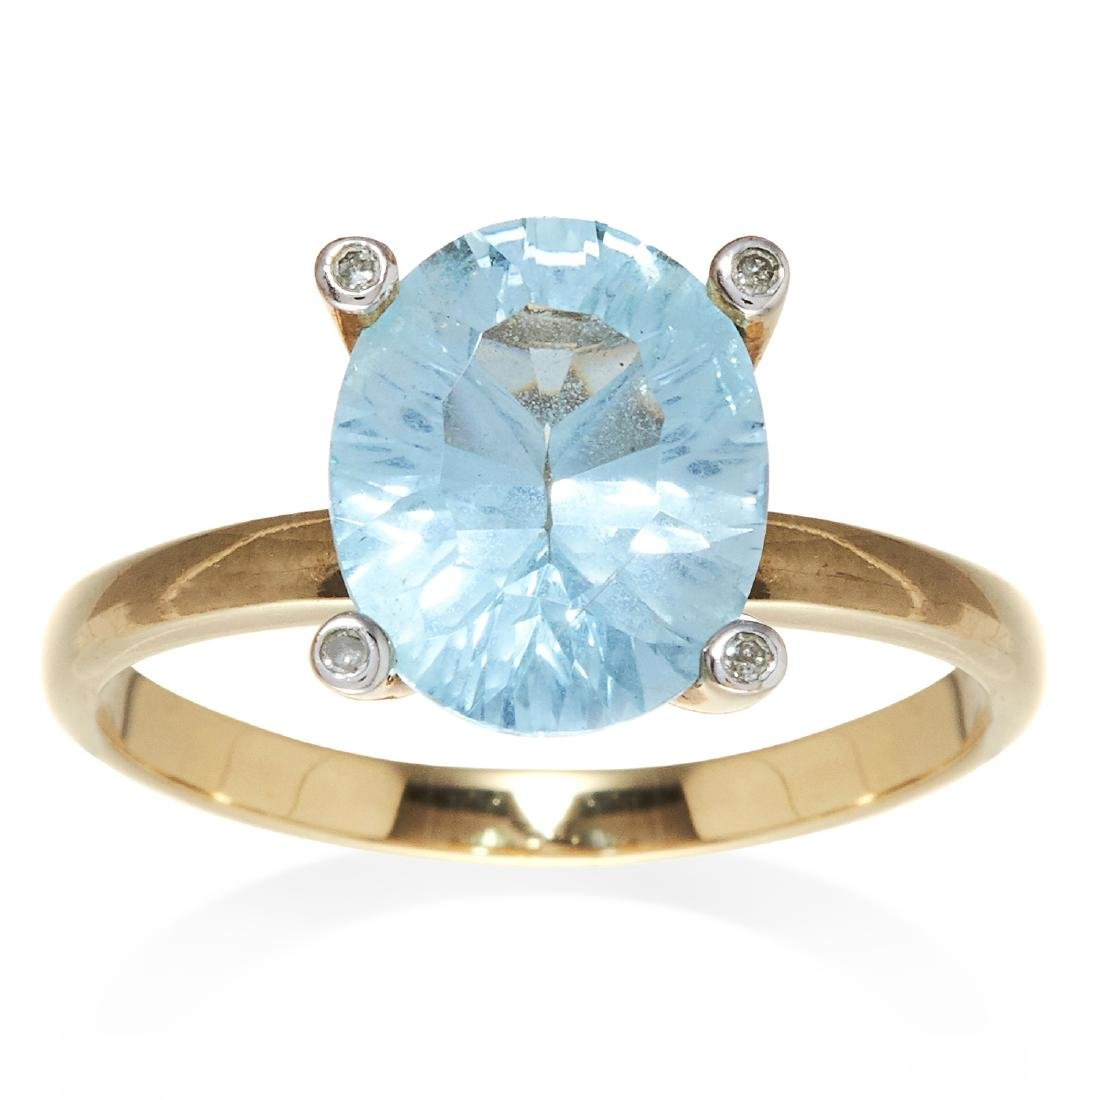 A TOPAZ AND DIAMOND DRESS RING in 9ct yellow gold, set